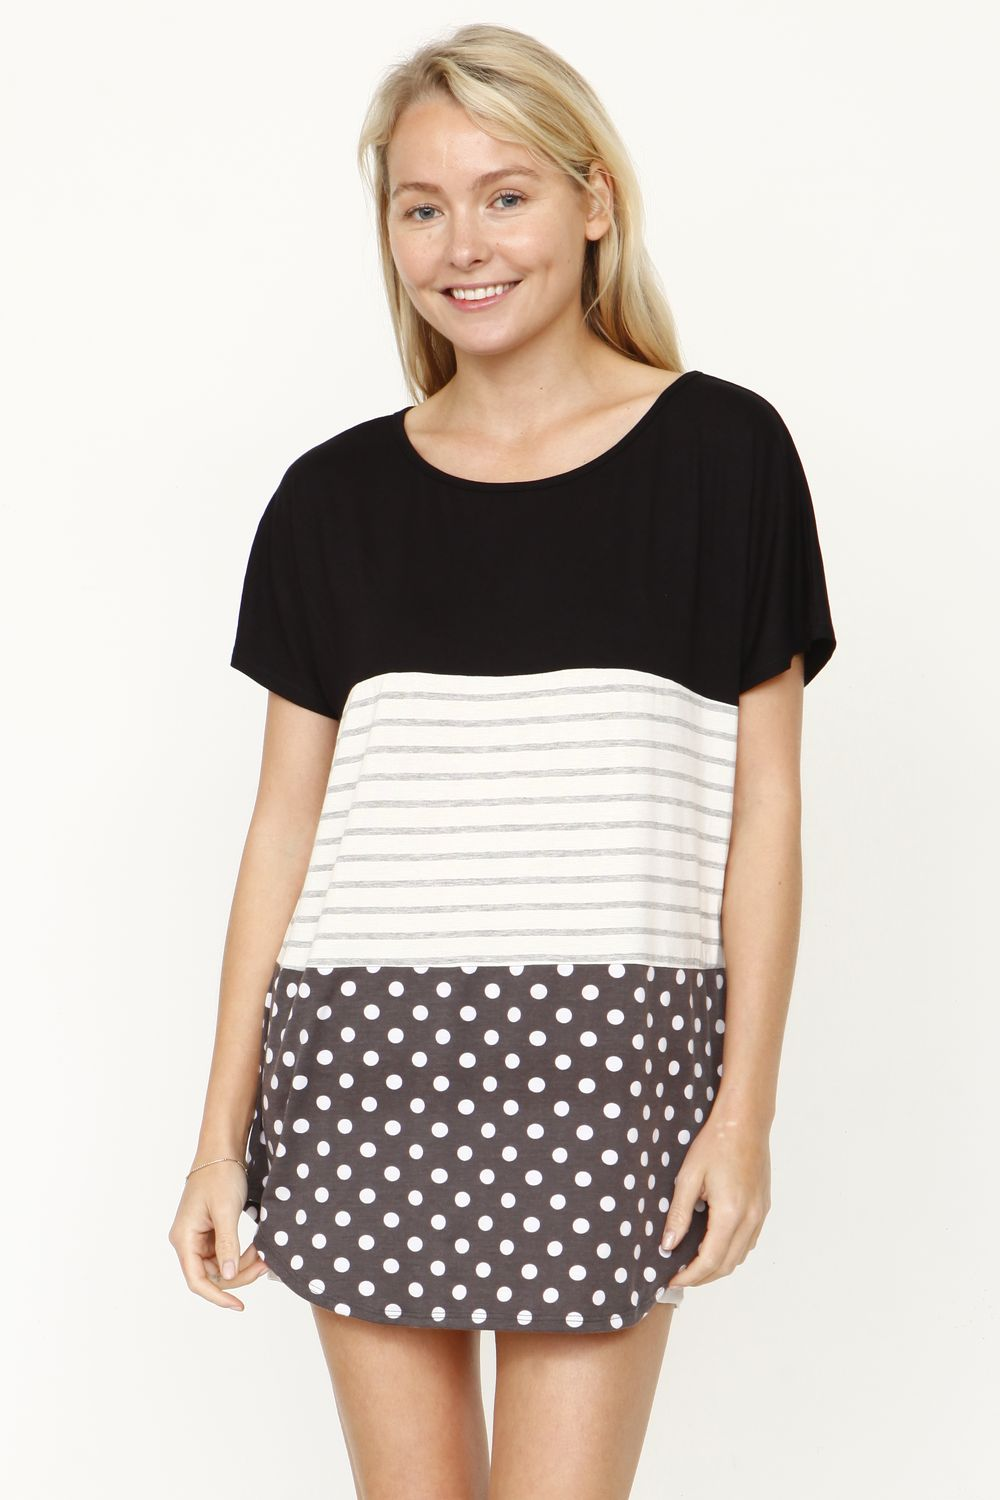 Black & Charcoal Polka Dot Color-Block Top